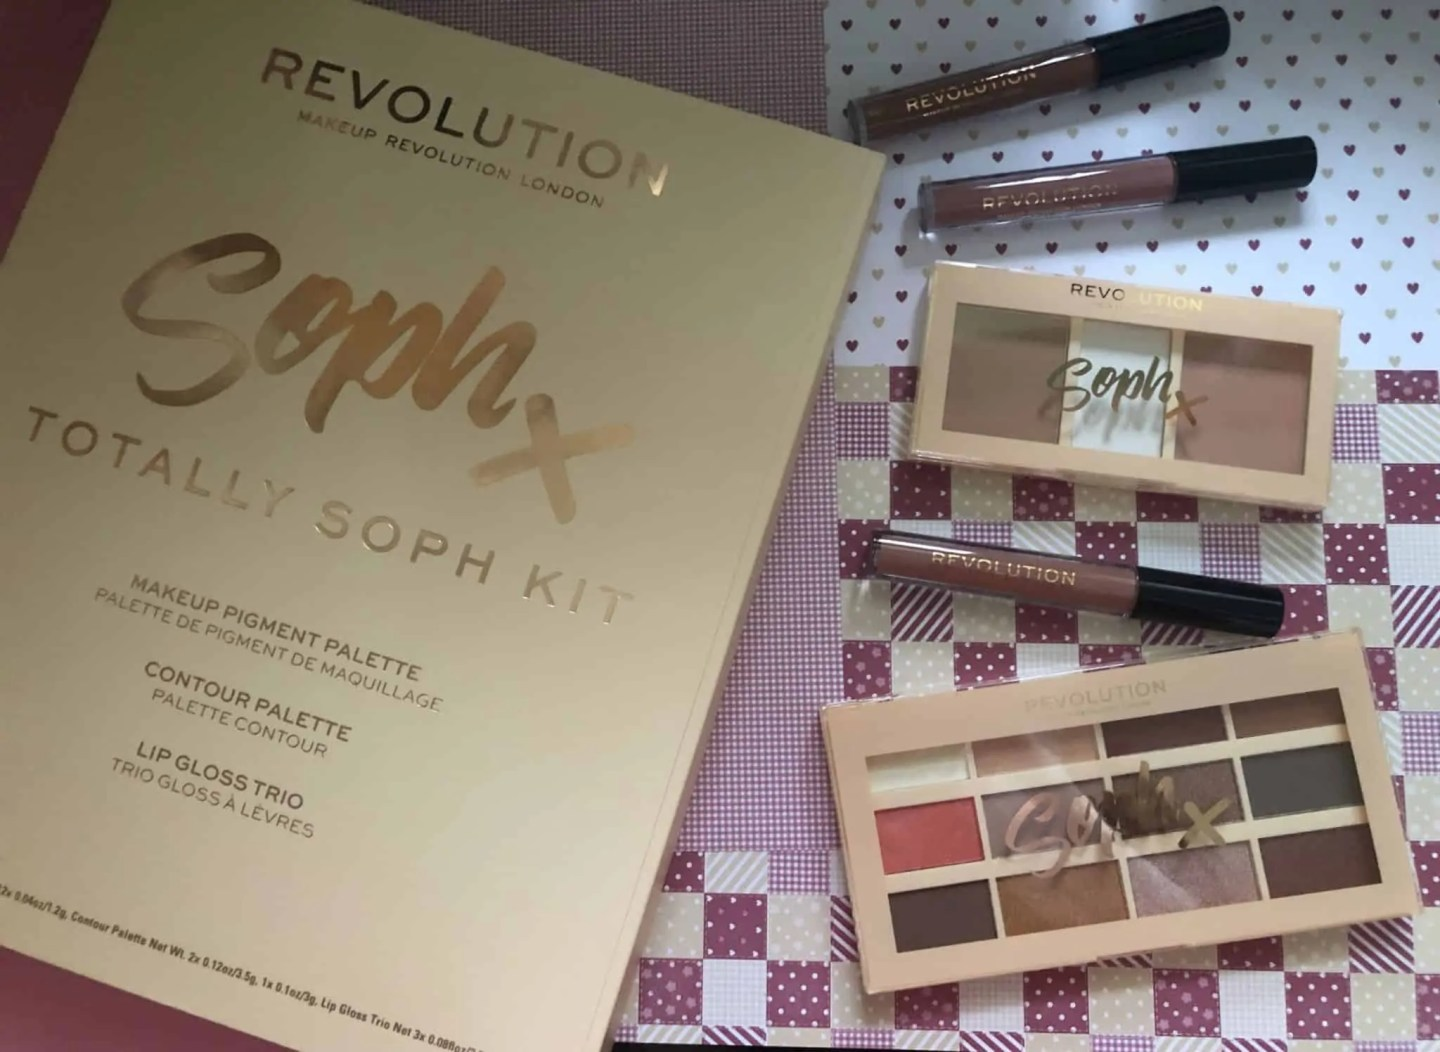 Win Revolution Totally Soph kit